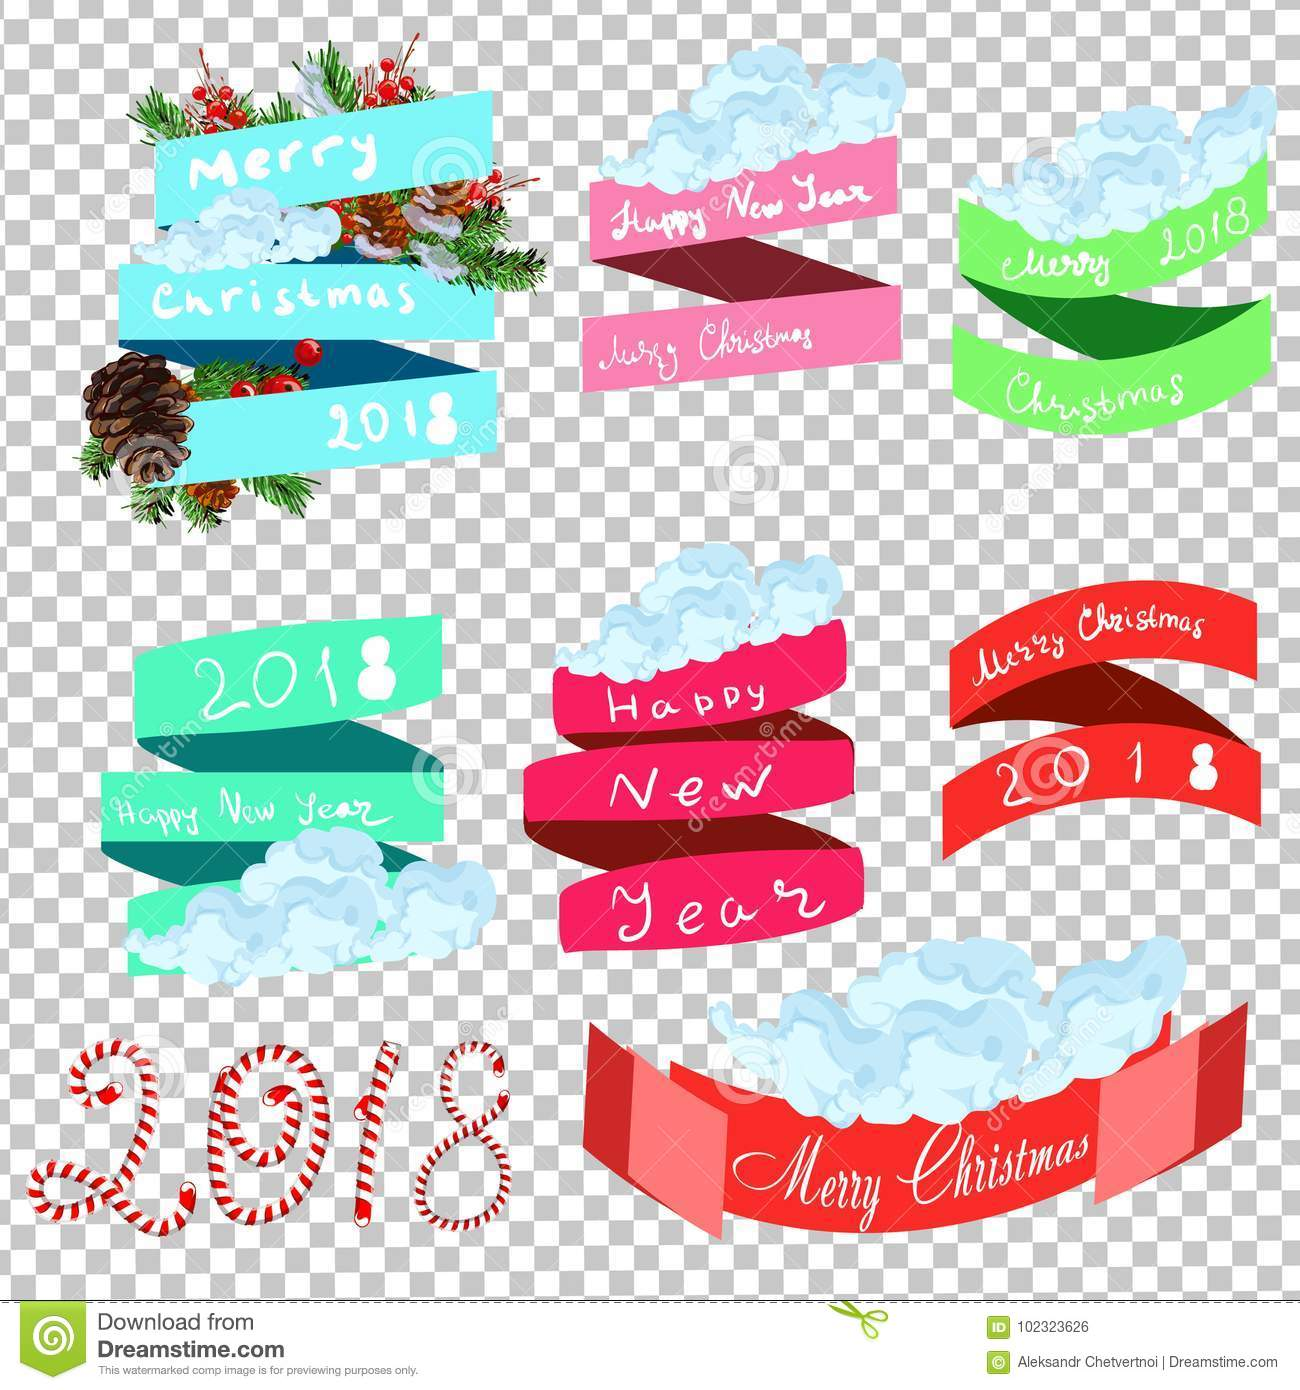 Classy Christmas Banners Crow Banners